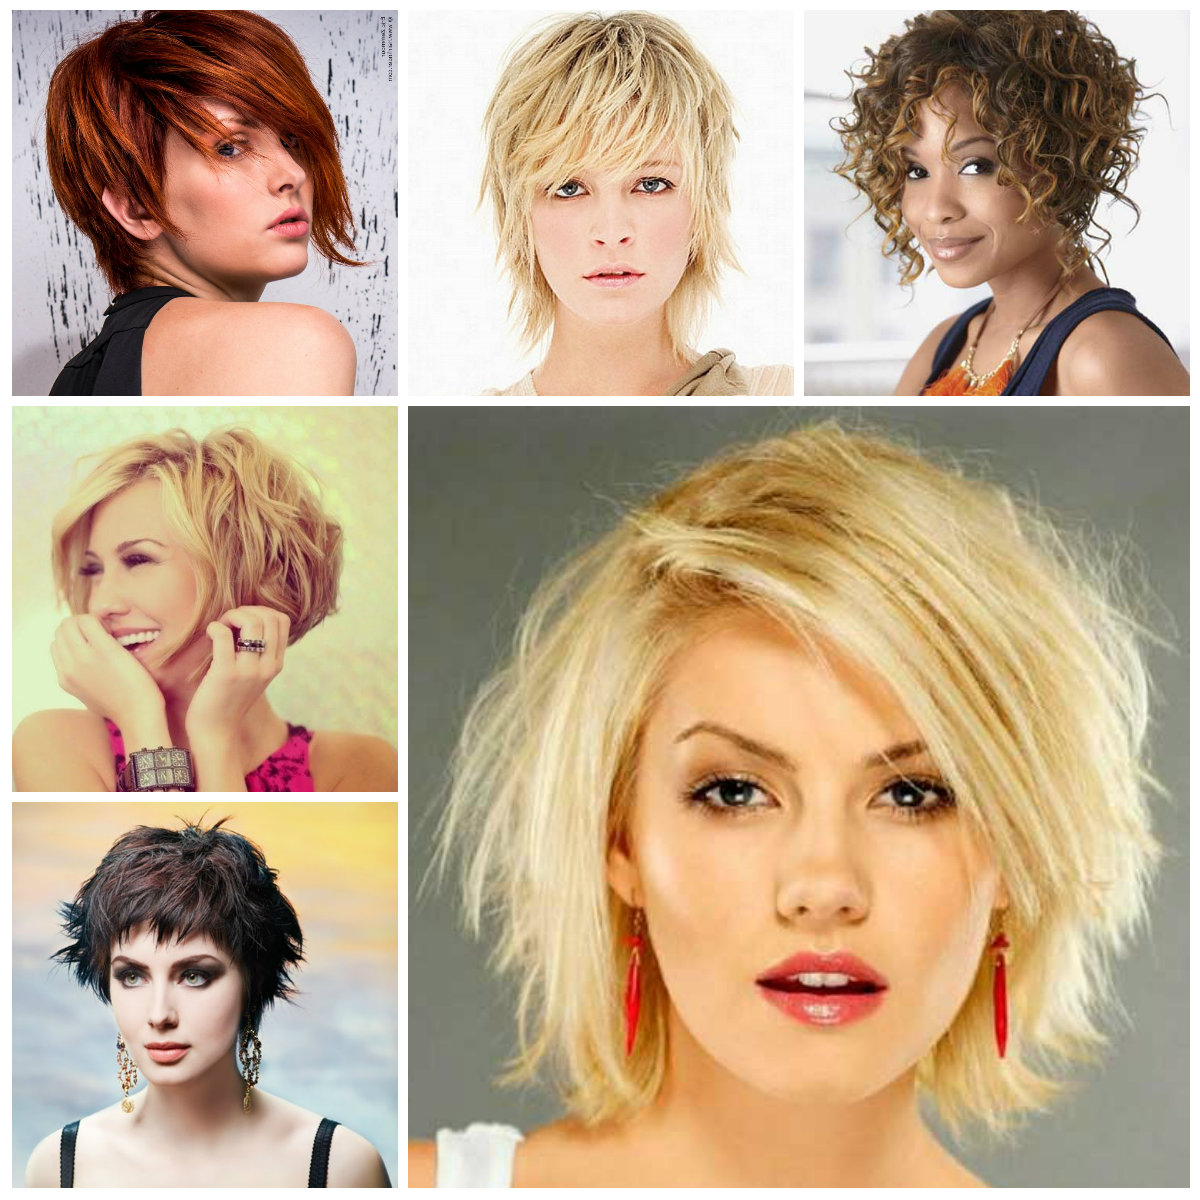 Hairstyles For Women 2019, Haircuts For Long Short And Medium Hair Inside Messy Short Haircuts For Women (View 14 of 25)